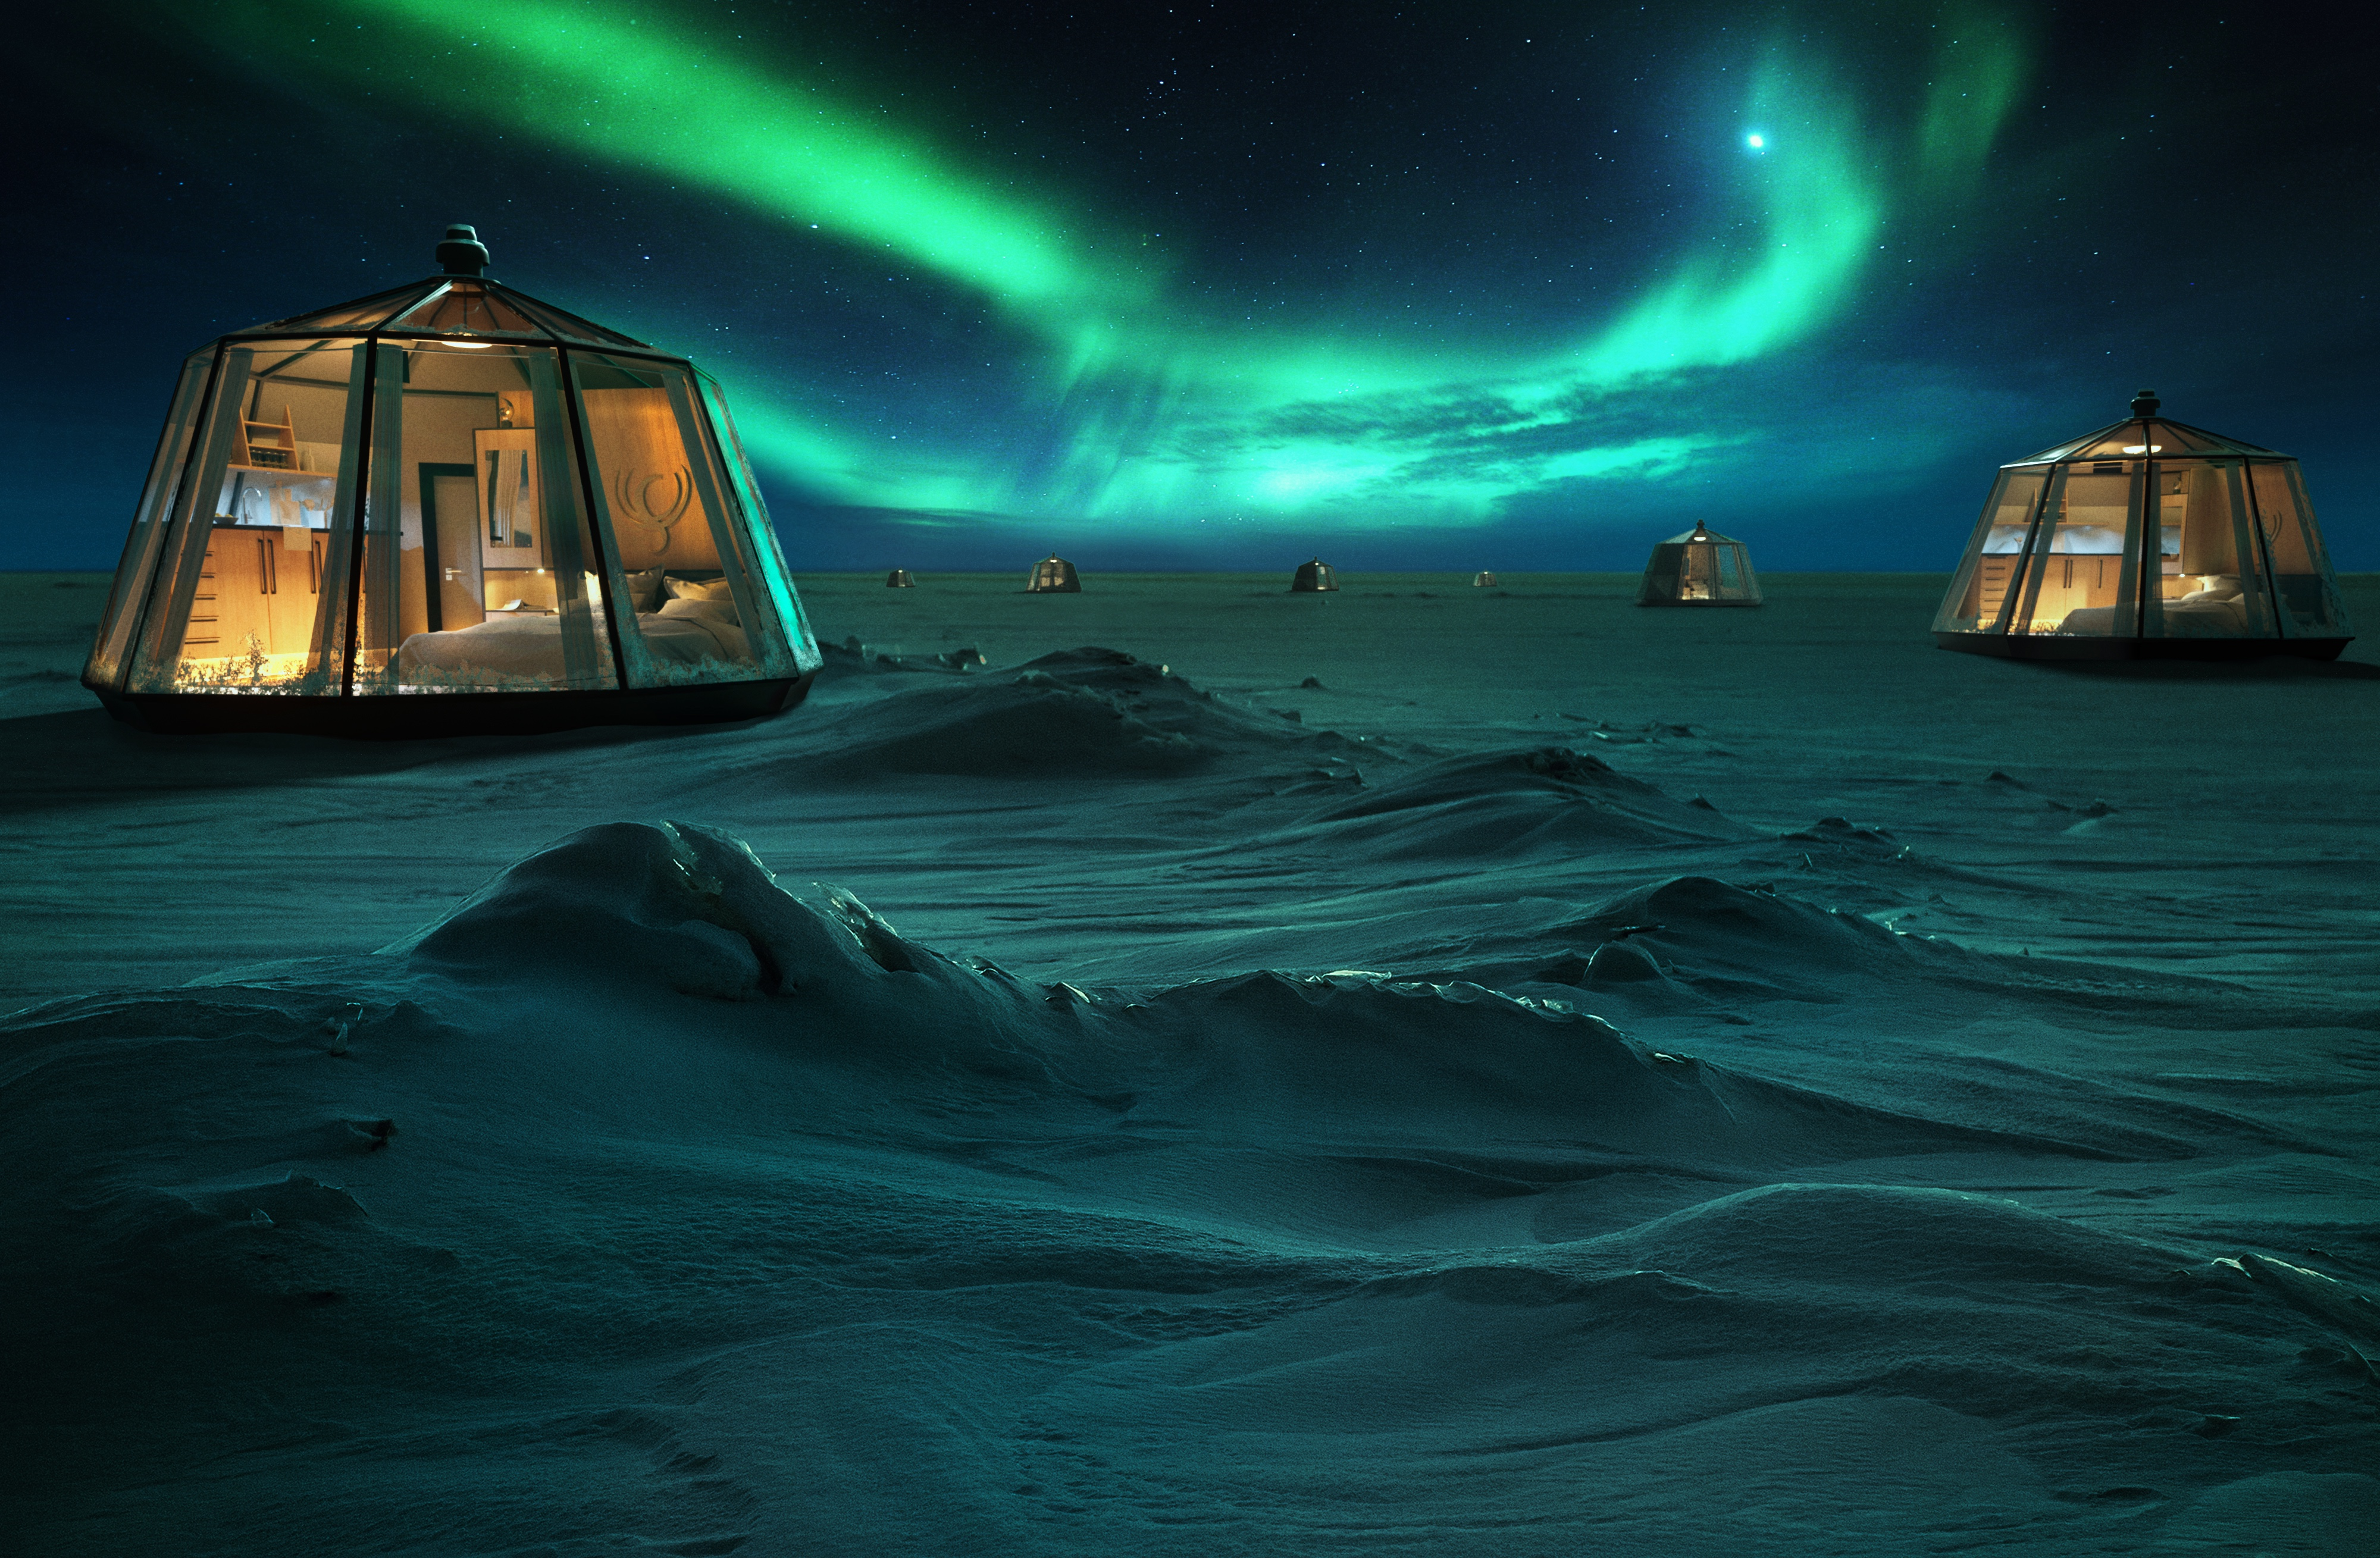 A Luxury Hotel Is Opening in the North Pole—and It Promises Breathtaking Views of the Northern Lights